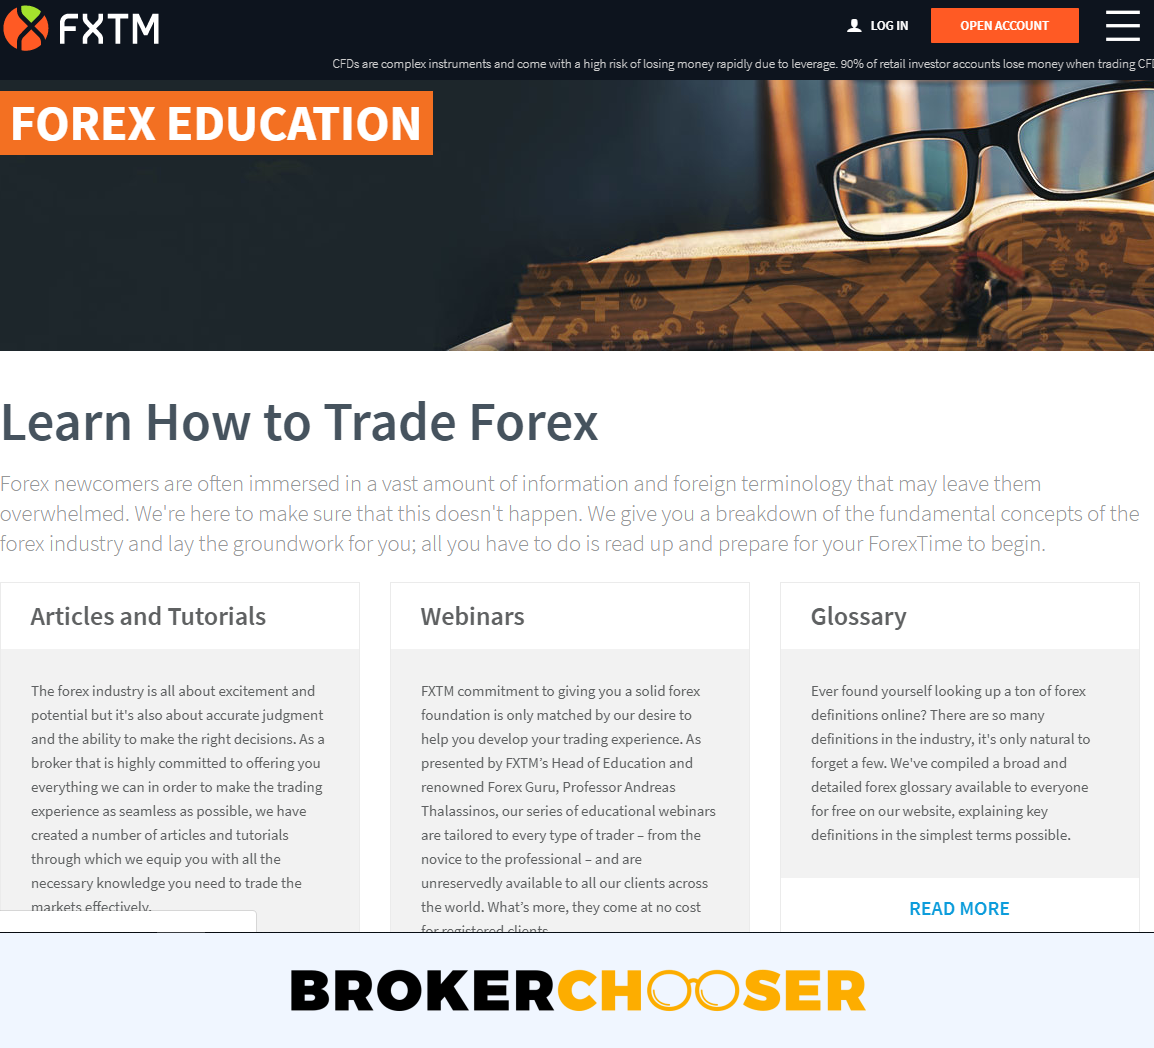 FXTM review - Education